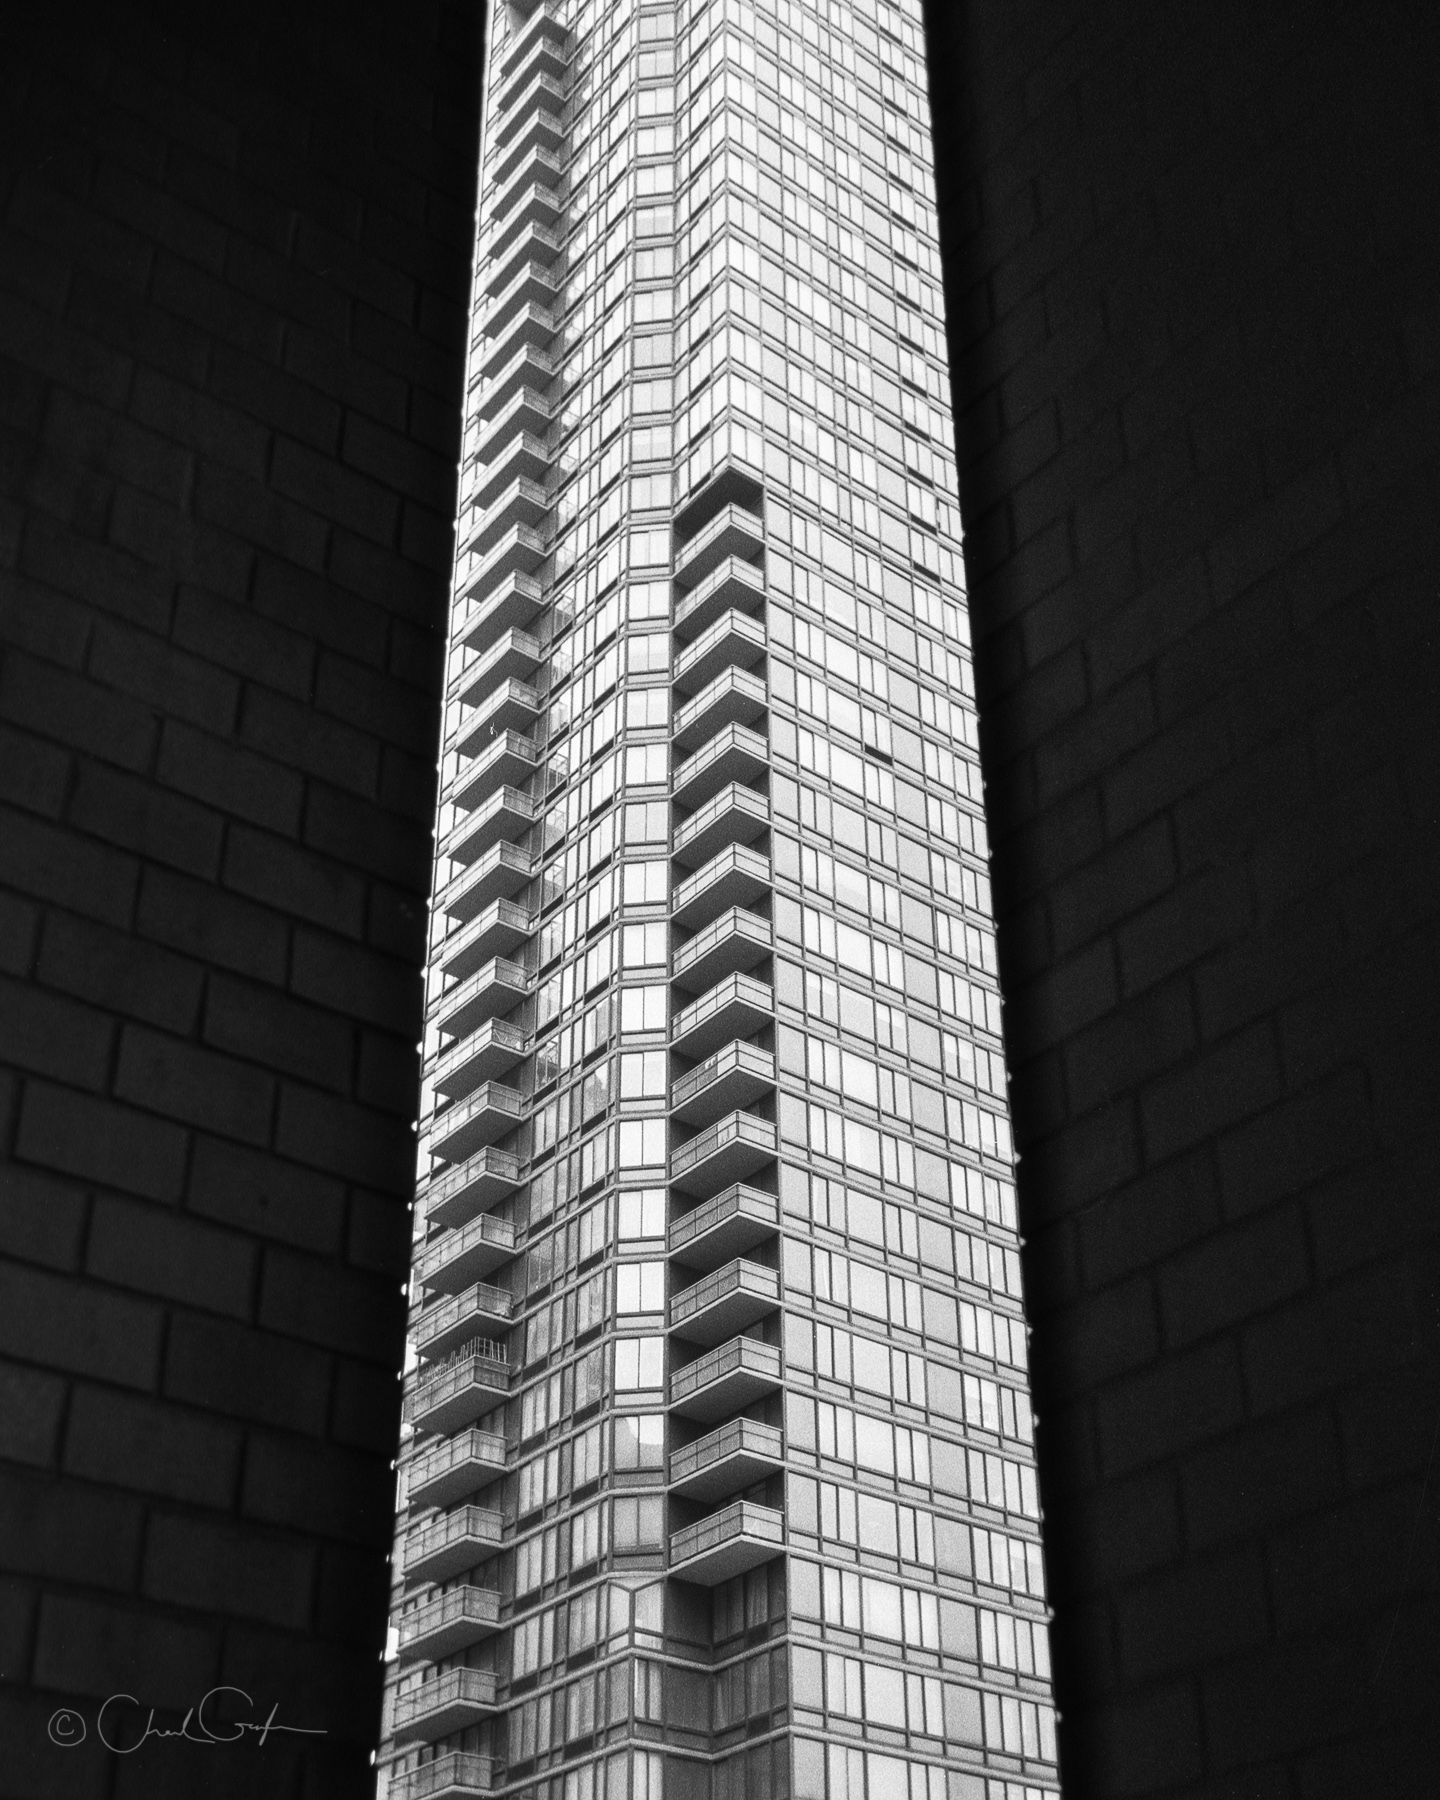 Skyscraper Squeezed Between Brick Pillars by Chad Gayle (Image)